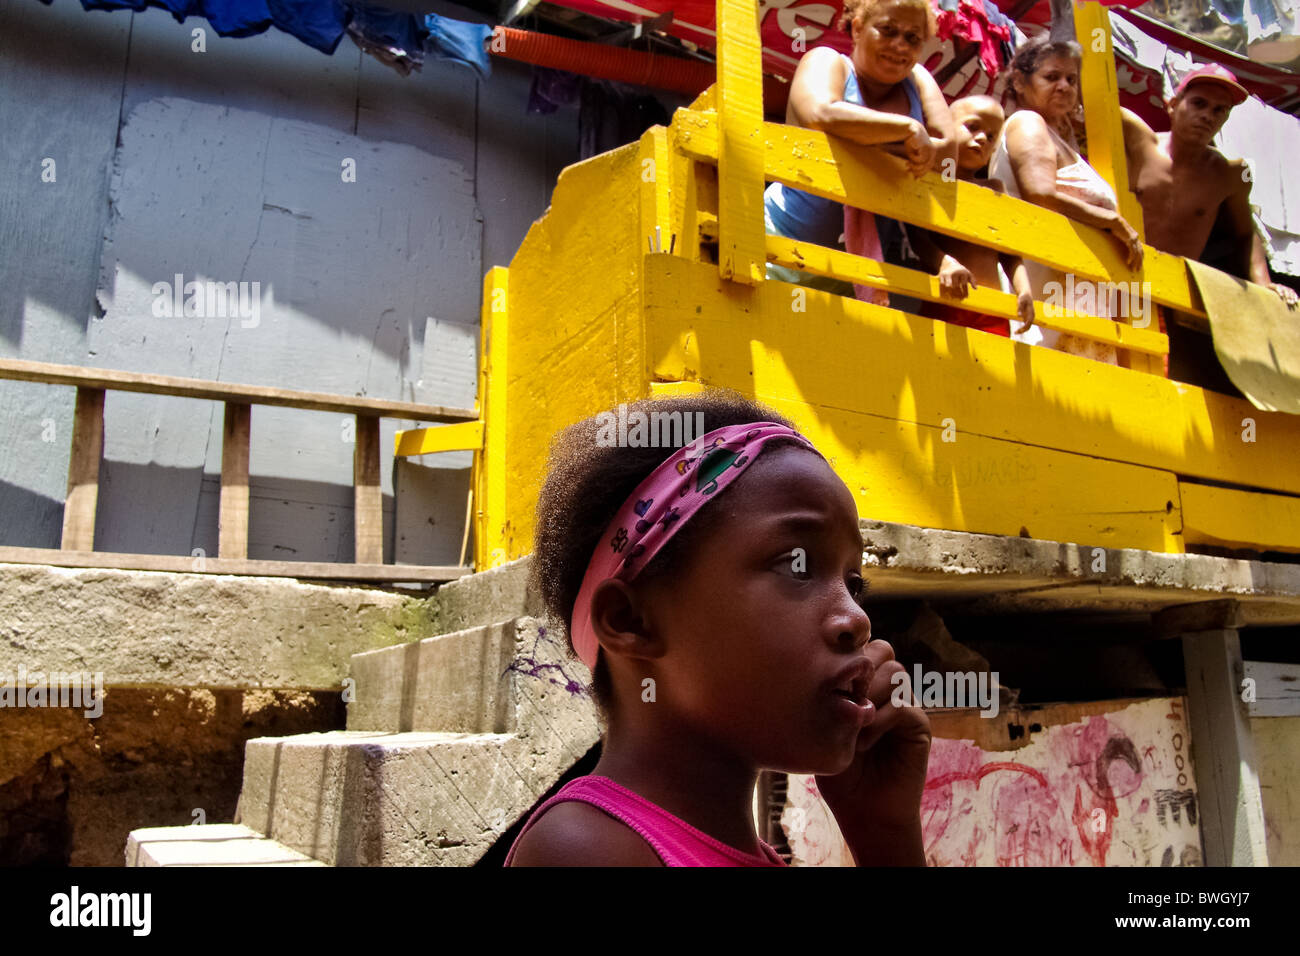 A Brazilian girl talks in front of her family in Rocinha, the largest slum in Rio de Janeiro. - Stock Image